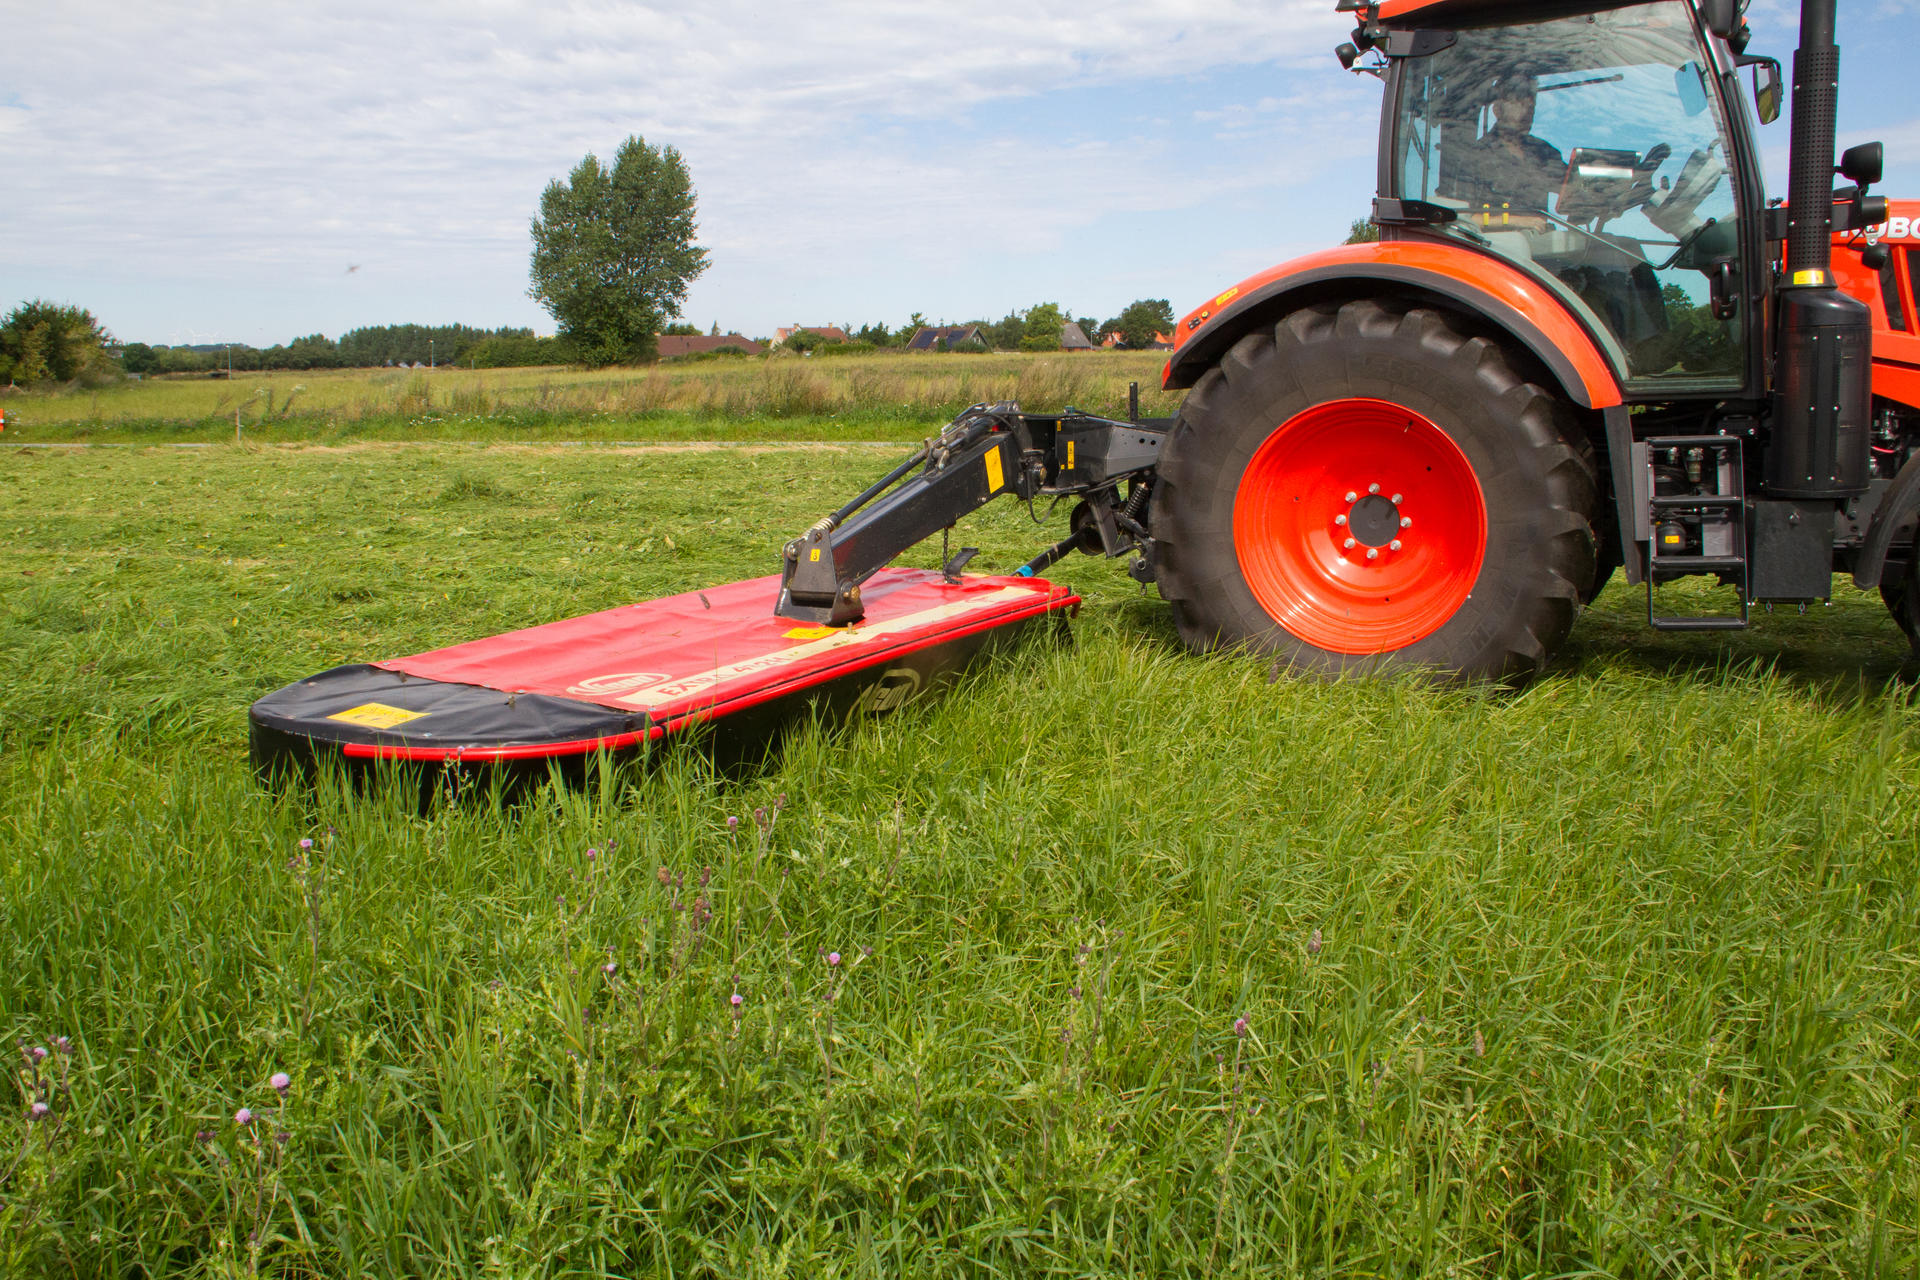 Tractor Rear Disc : Rear mounted disc mowers hydraulic suspended vicon extra